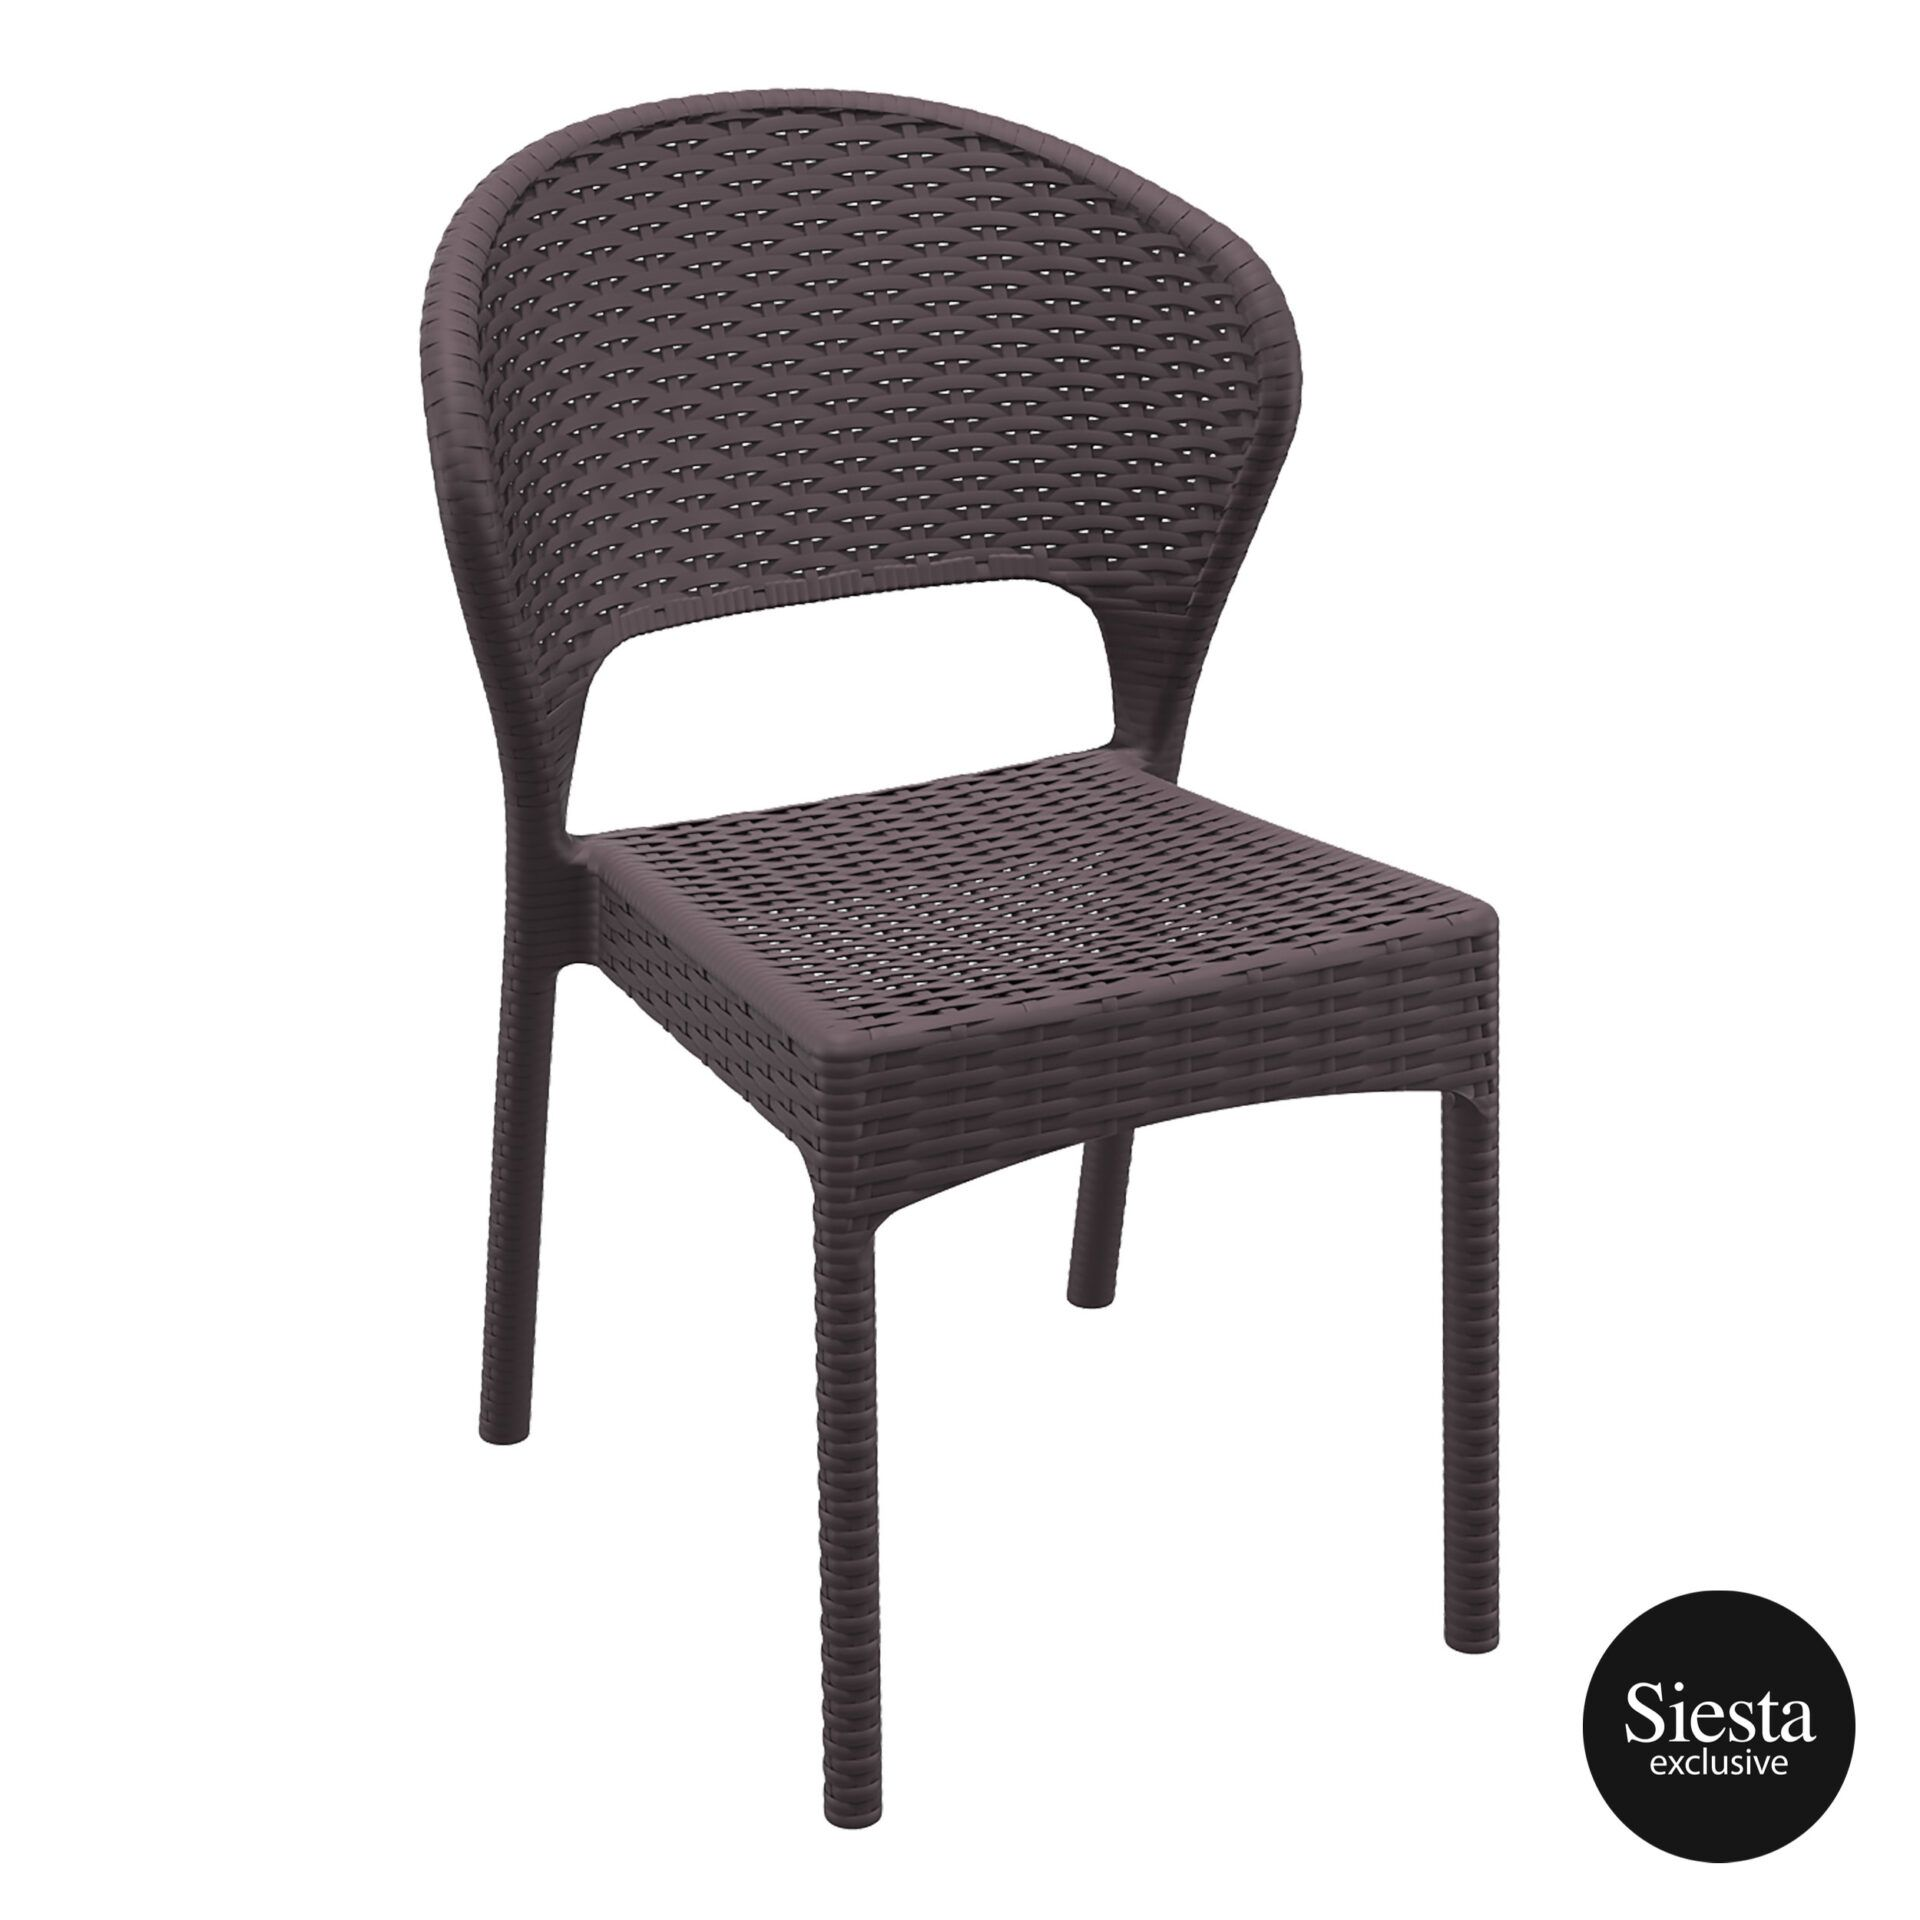 resin rattan outdoor daytona chair brown front side